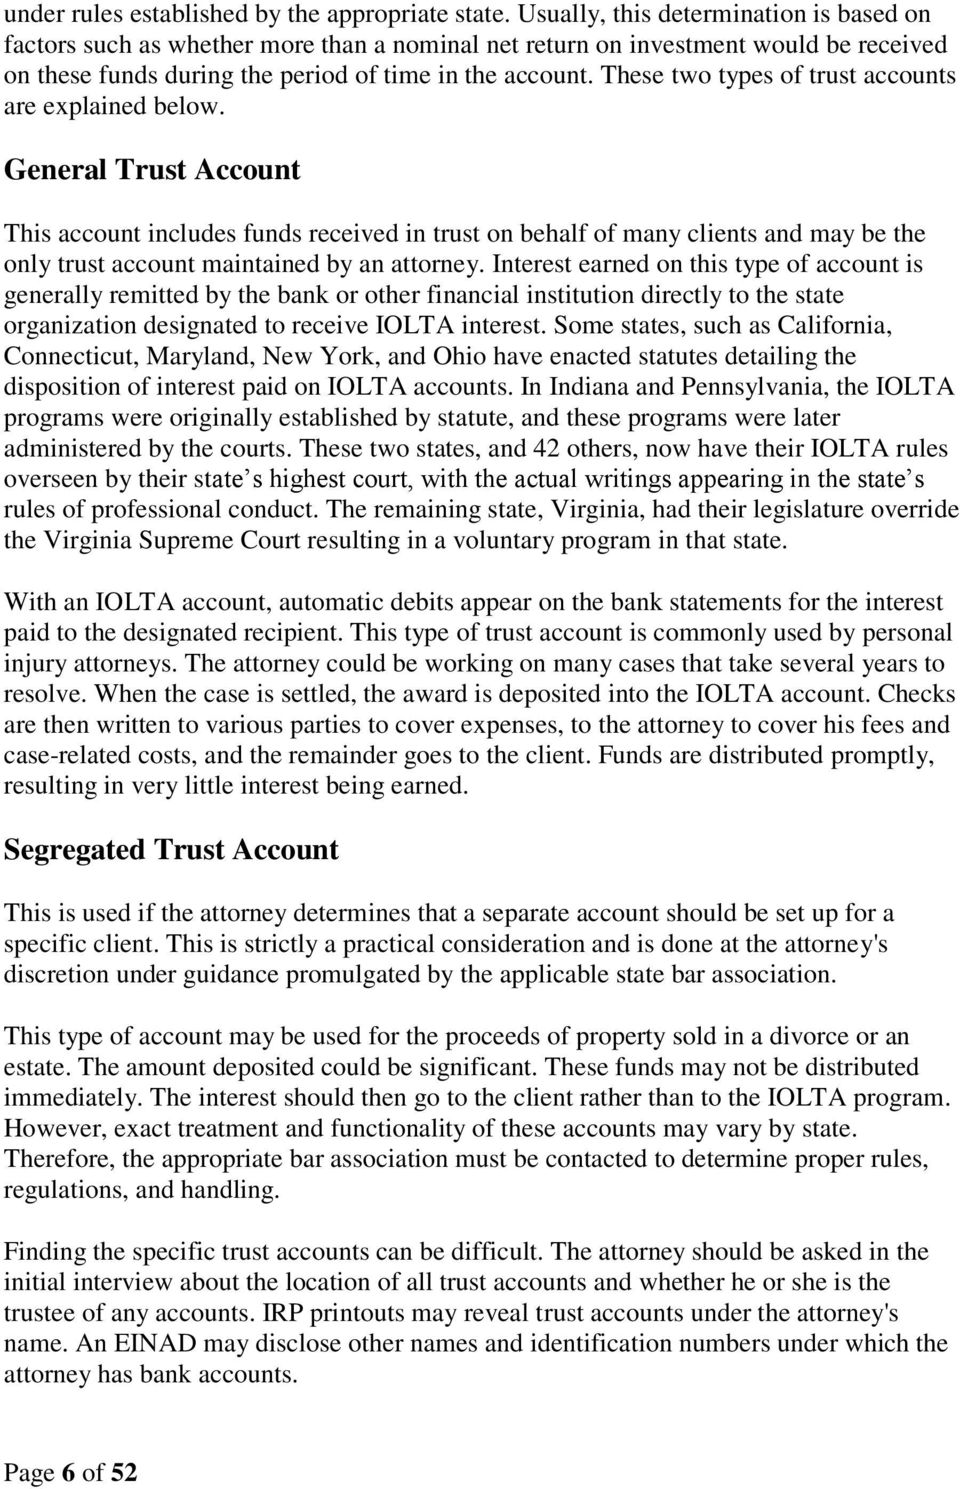 These two types of trust accounts are explained below.